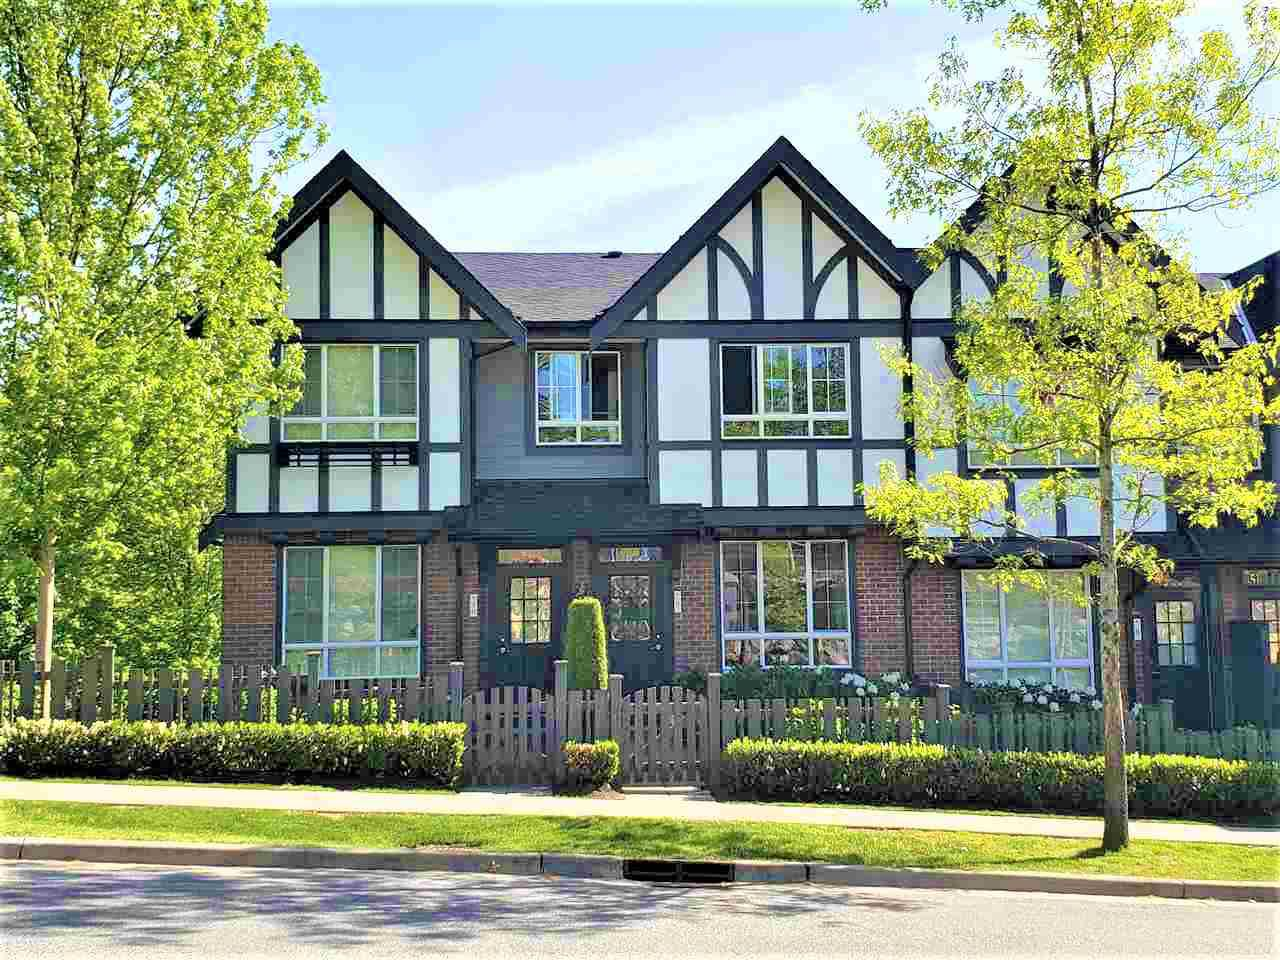 """Main Photo: 9 1338 HAMES Crescent in Coquitlam: Burke Mountain Townhouse for sale in """"FARRINGTON Park"""" : MLS®# R2366630"""